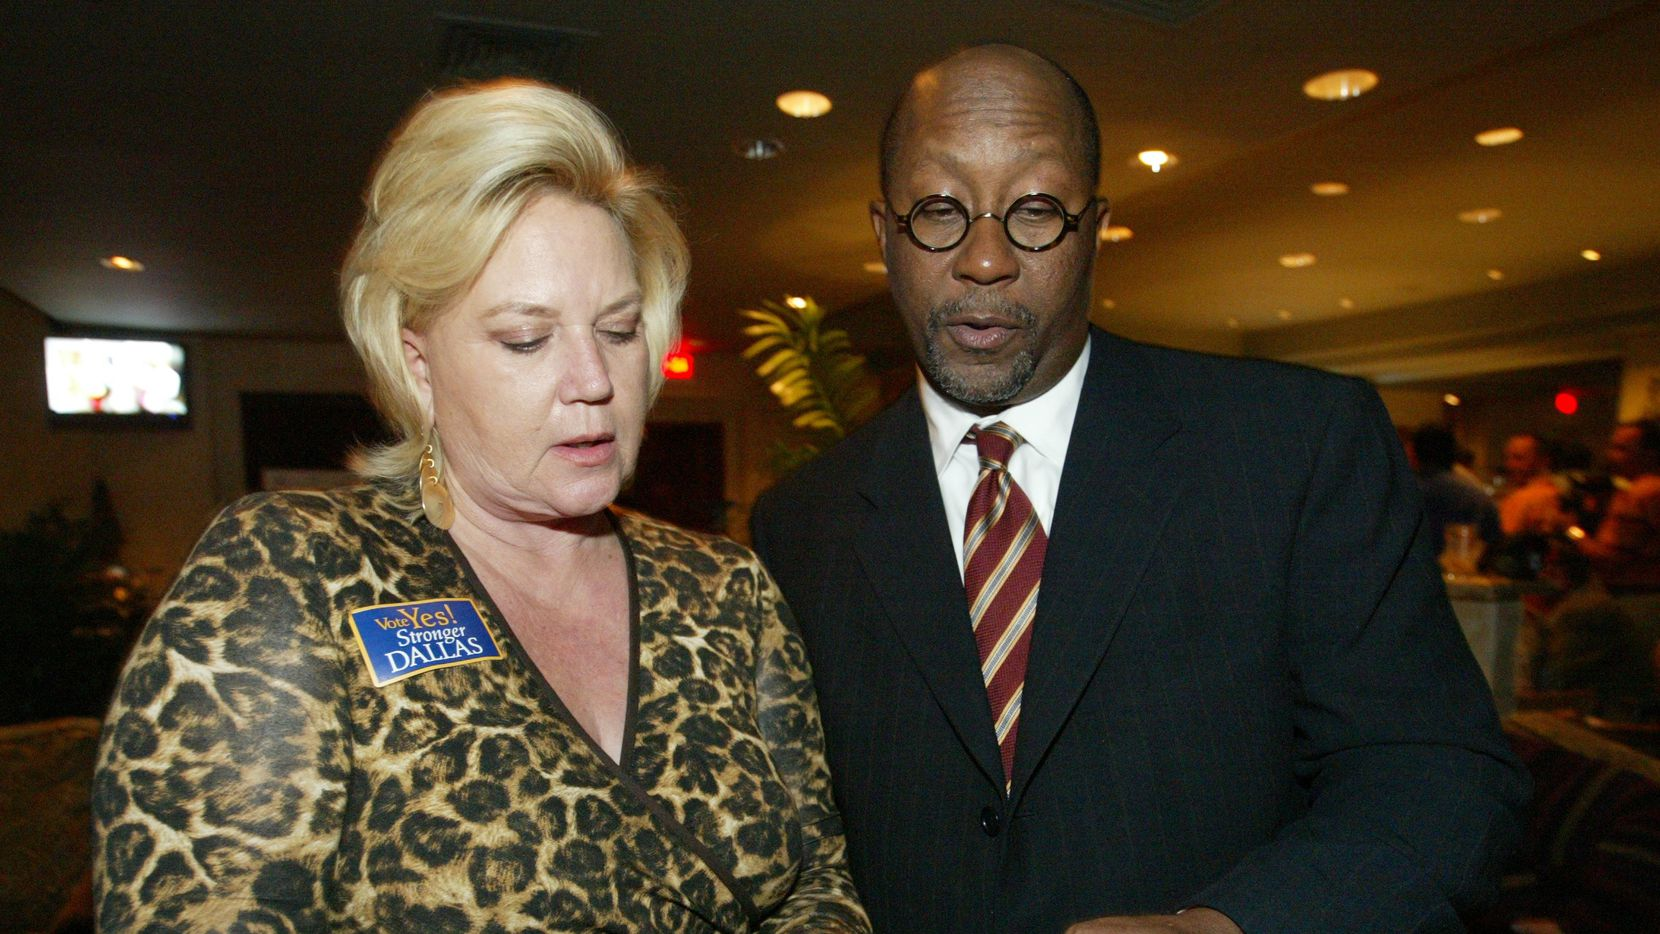 Carol Reed, campaign director for the strong mayor propositions that failed in 2005, shows former Dallas mayor Ron Kirk the incoming votes on a note pad during the election night watch party at Riccardi's in Dallas.